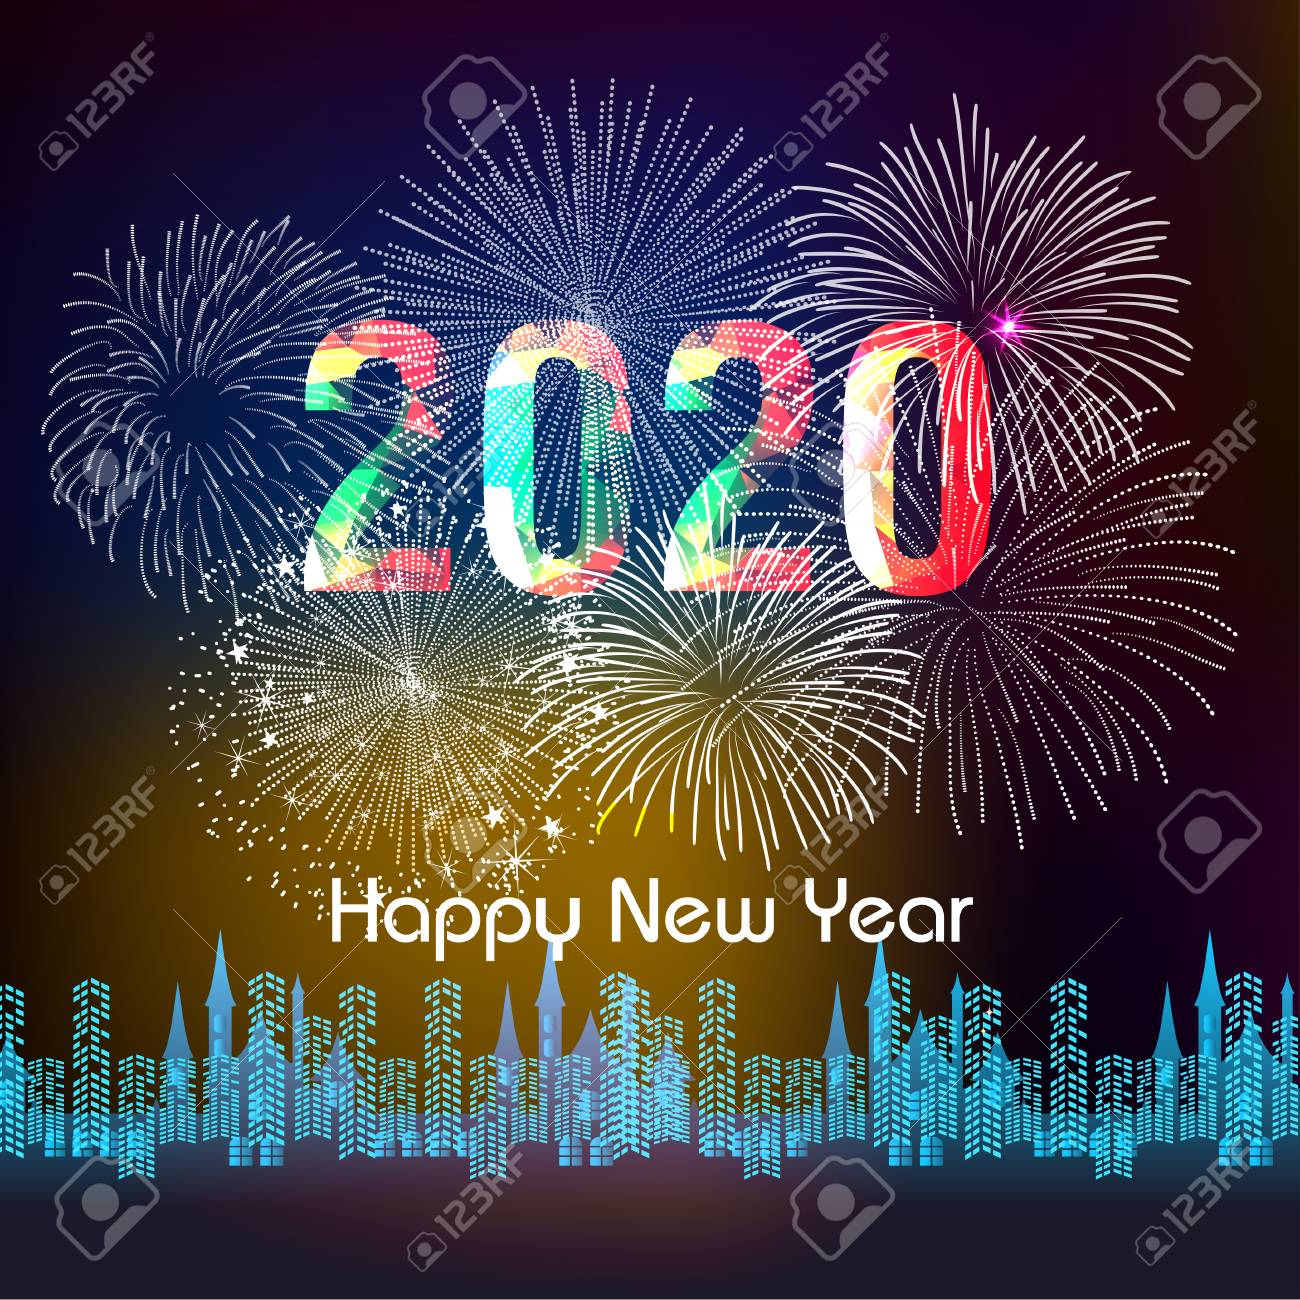 Happy New Year 2020 Background With Fireworks Royalty 1300x1300